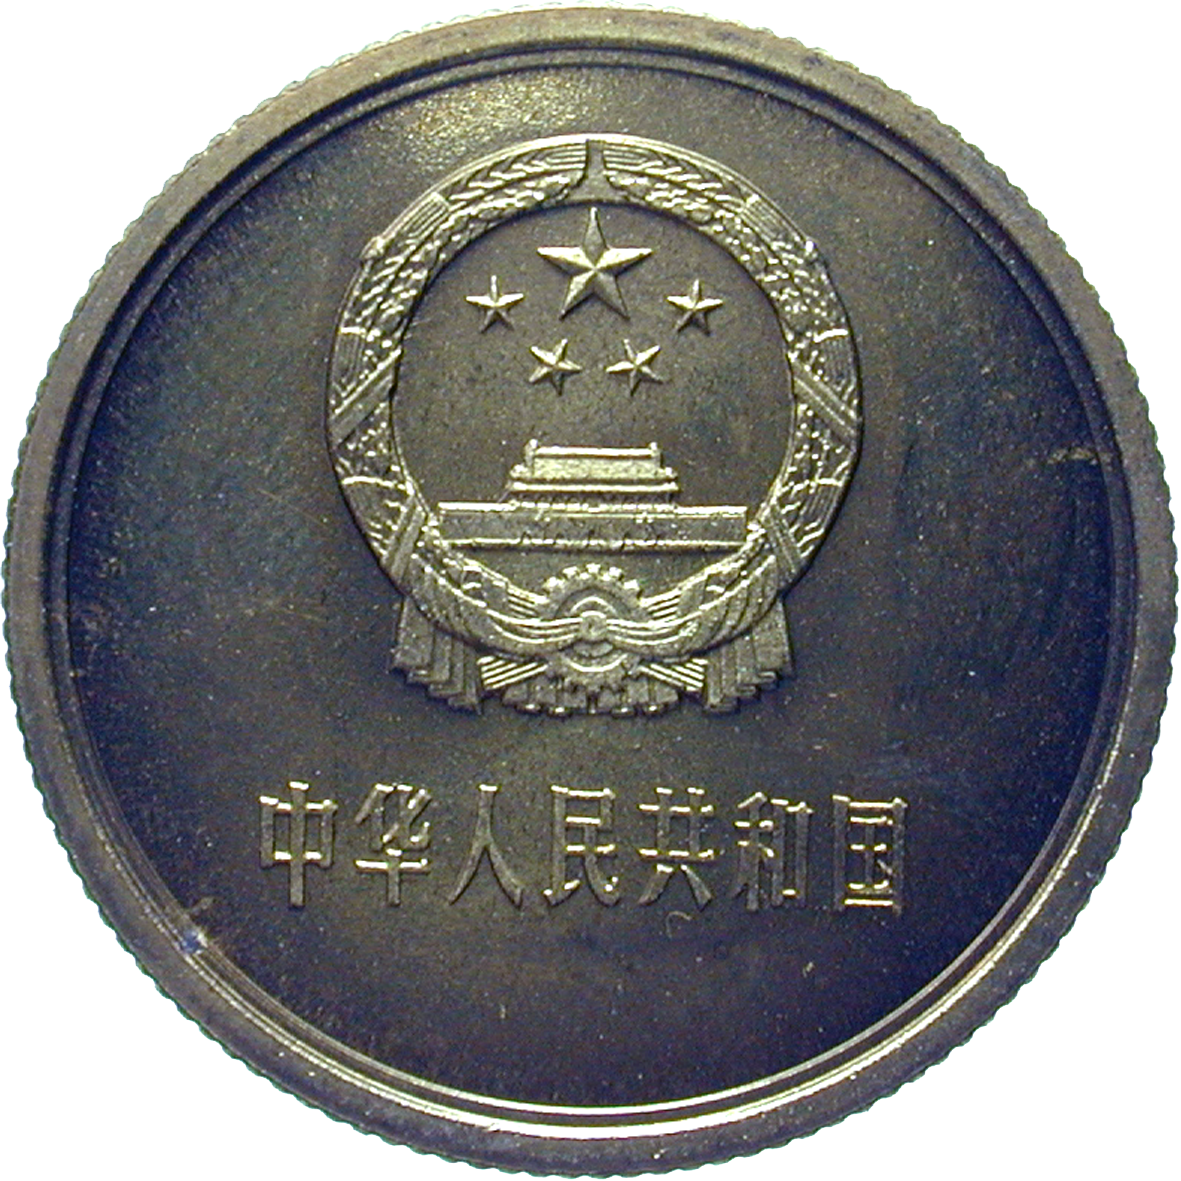 People's Republic of China, 2 Jiao 1980 (obverse)